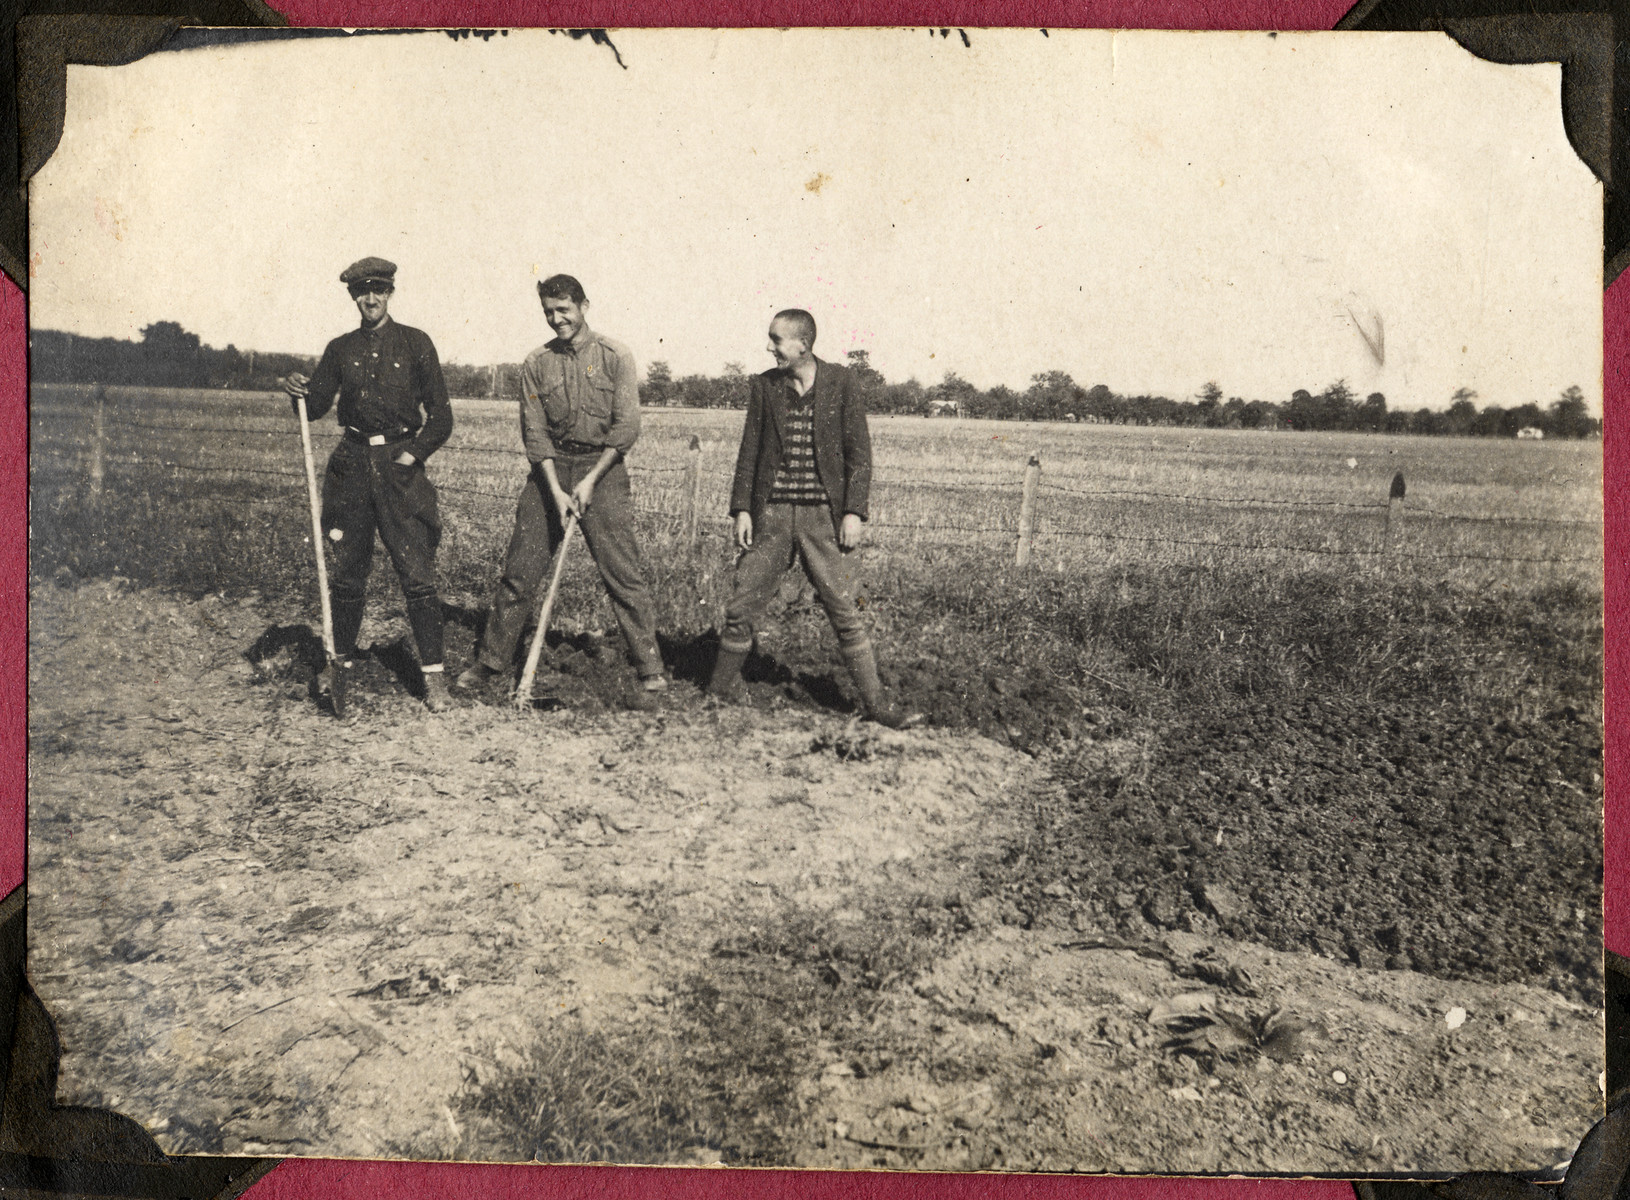 Three unidentified young men pose with farm tools in an unidentified field.